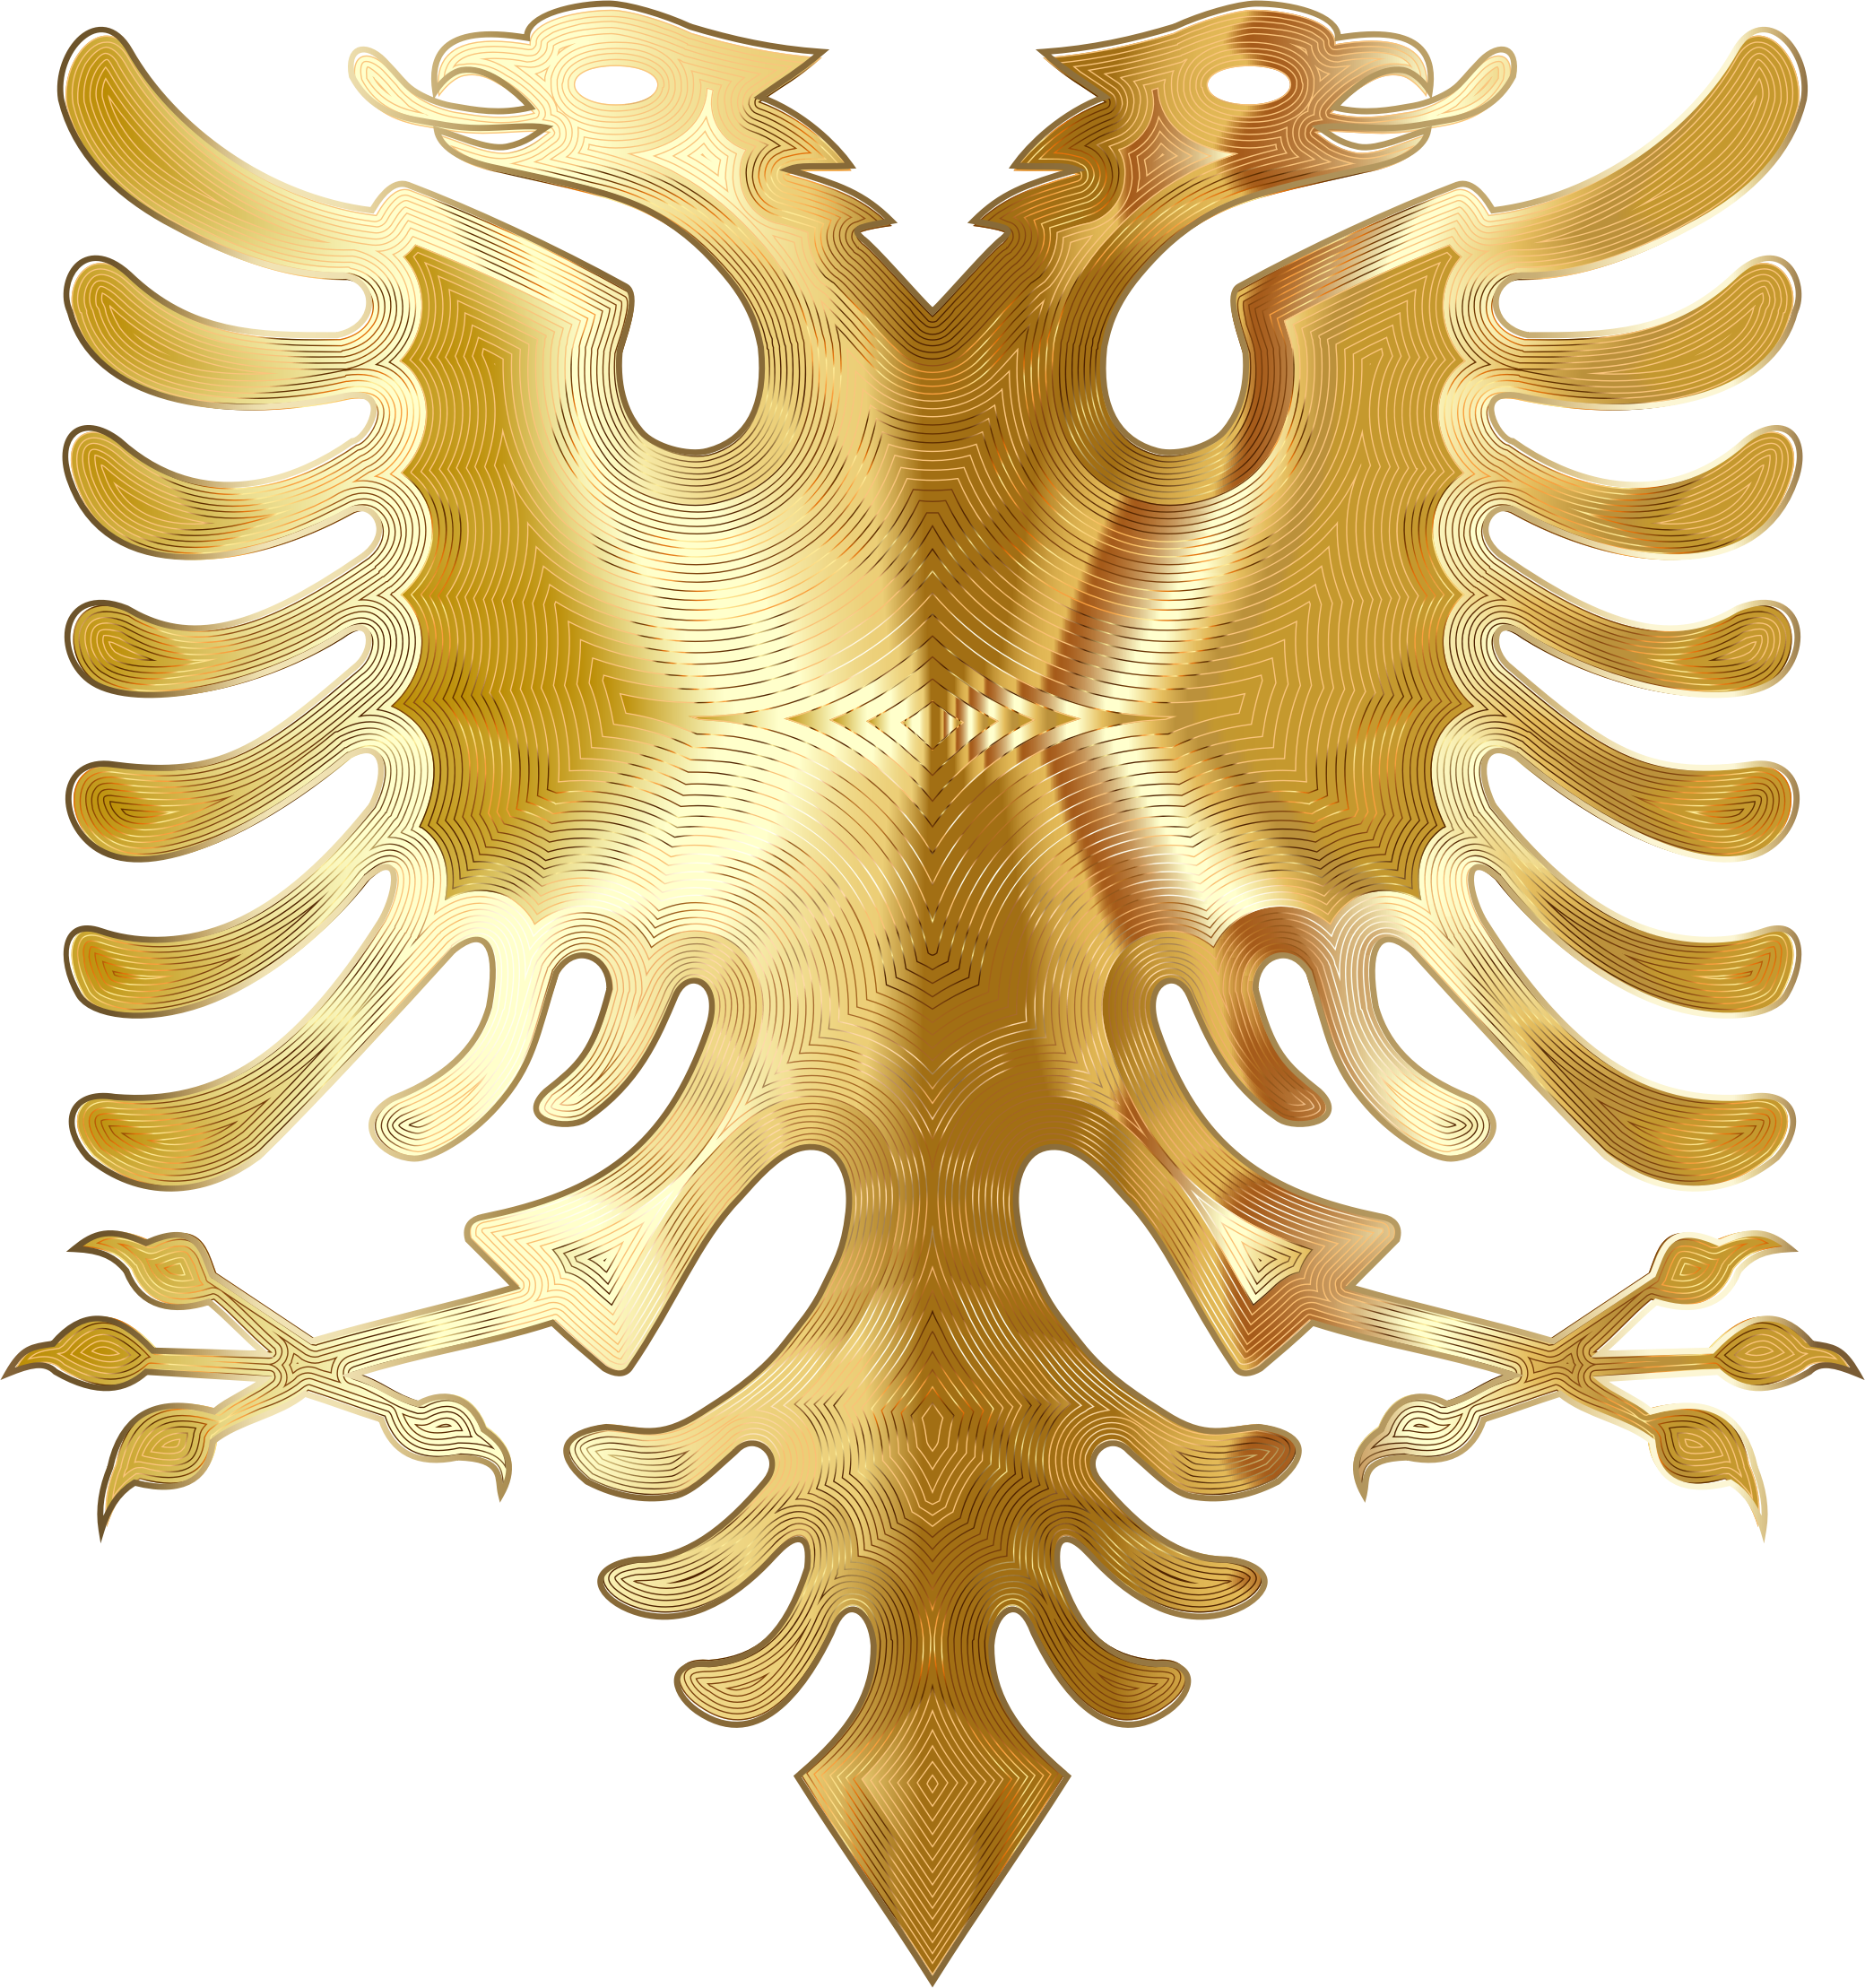 Golden Double Headed Eagle 2 by GDJ